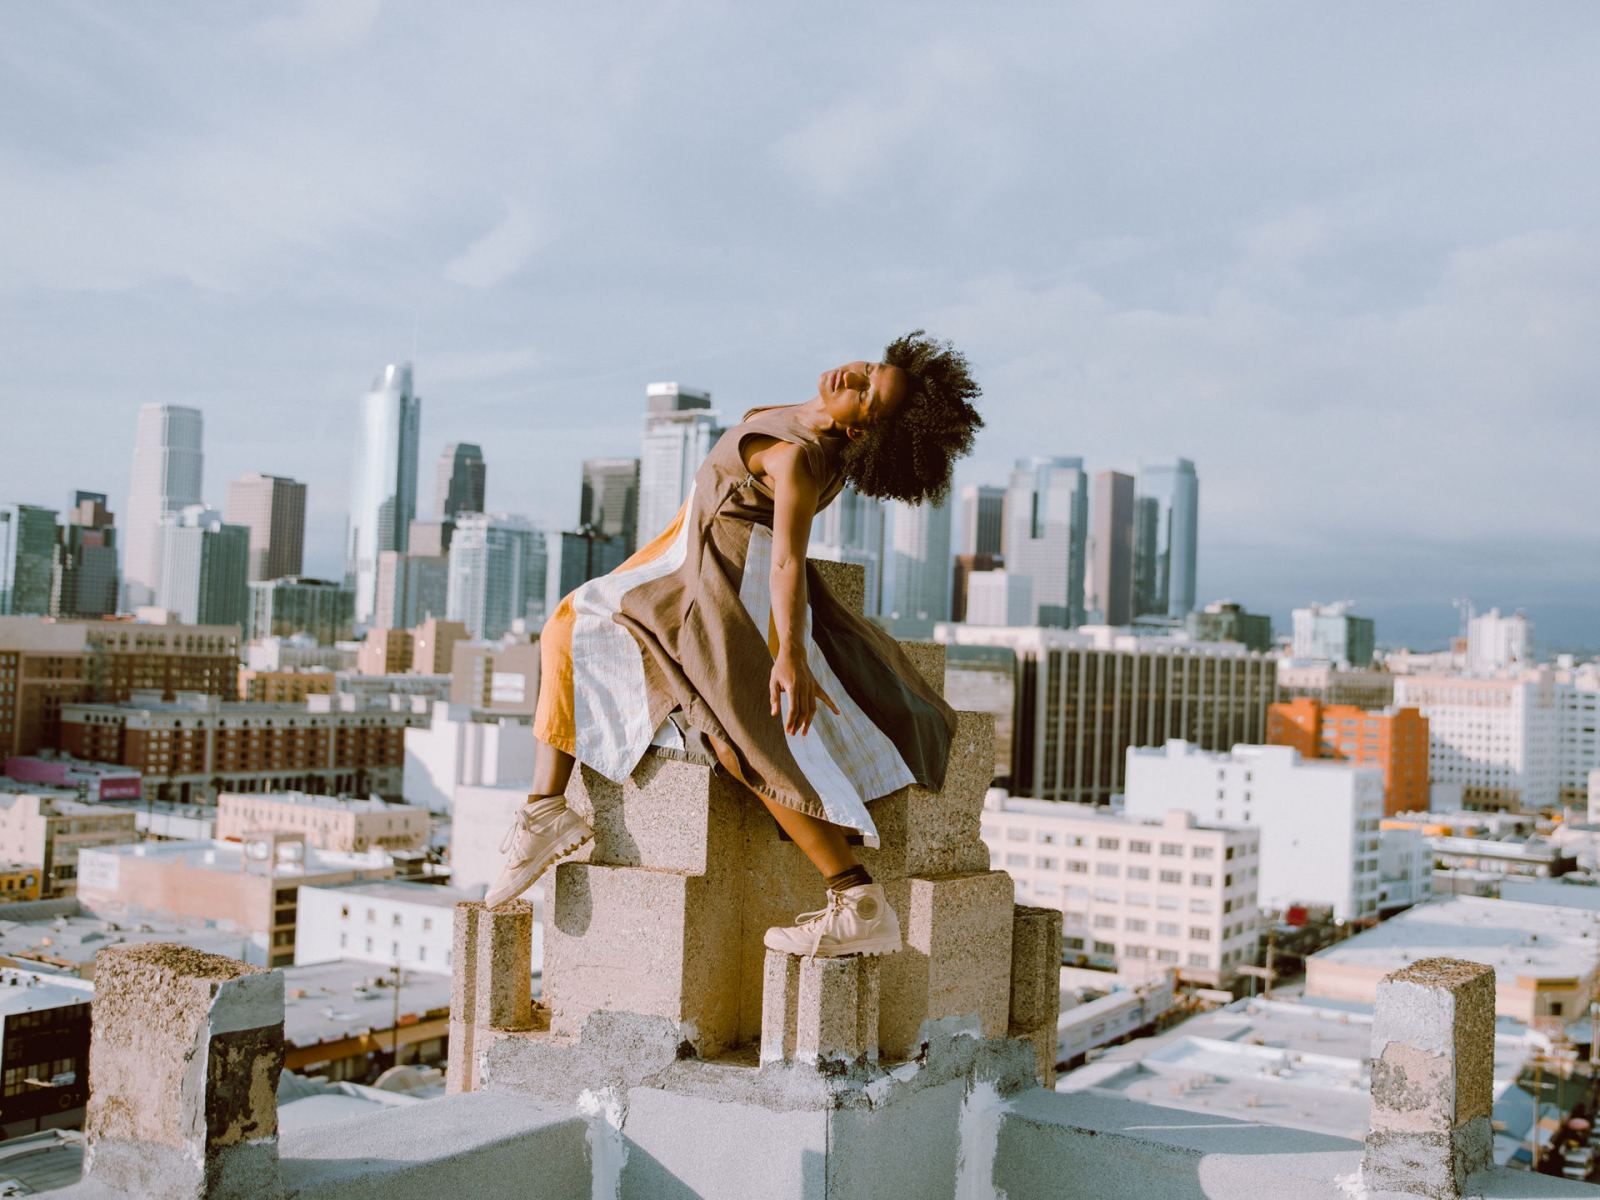 Dancer Himerria Wortham with DTLA as her backdrop